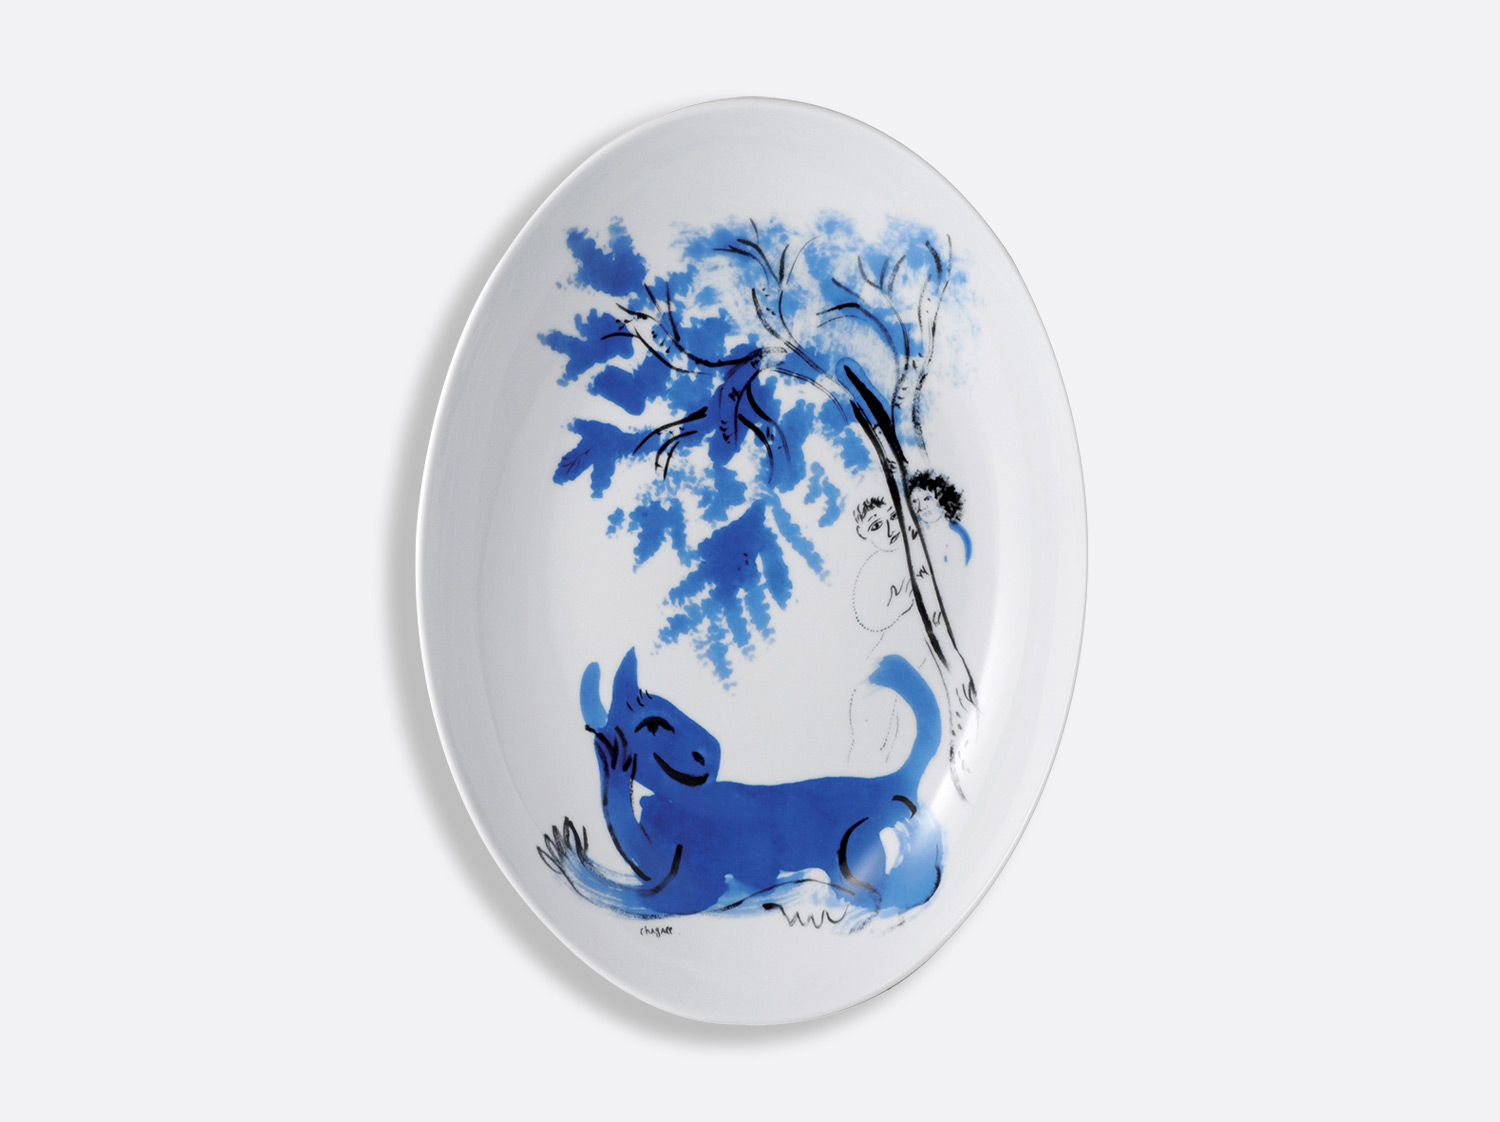 "Plat ovale 39 x 28 cm ""L'Animal vert"" 1941 en porcelaine de la collection Collect chagall l animal vert 1941 Bernardaud"